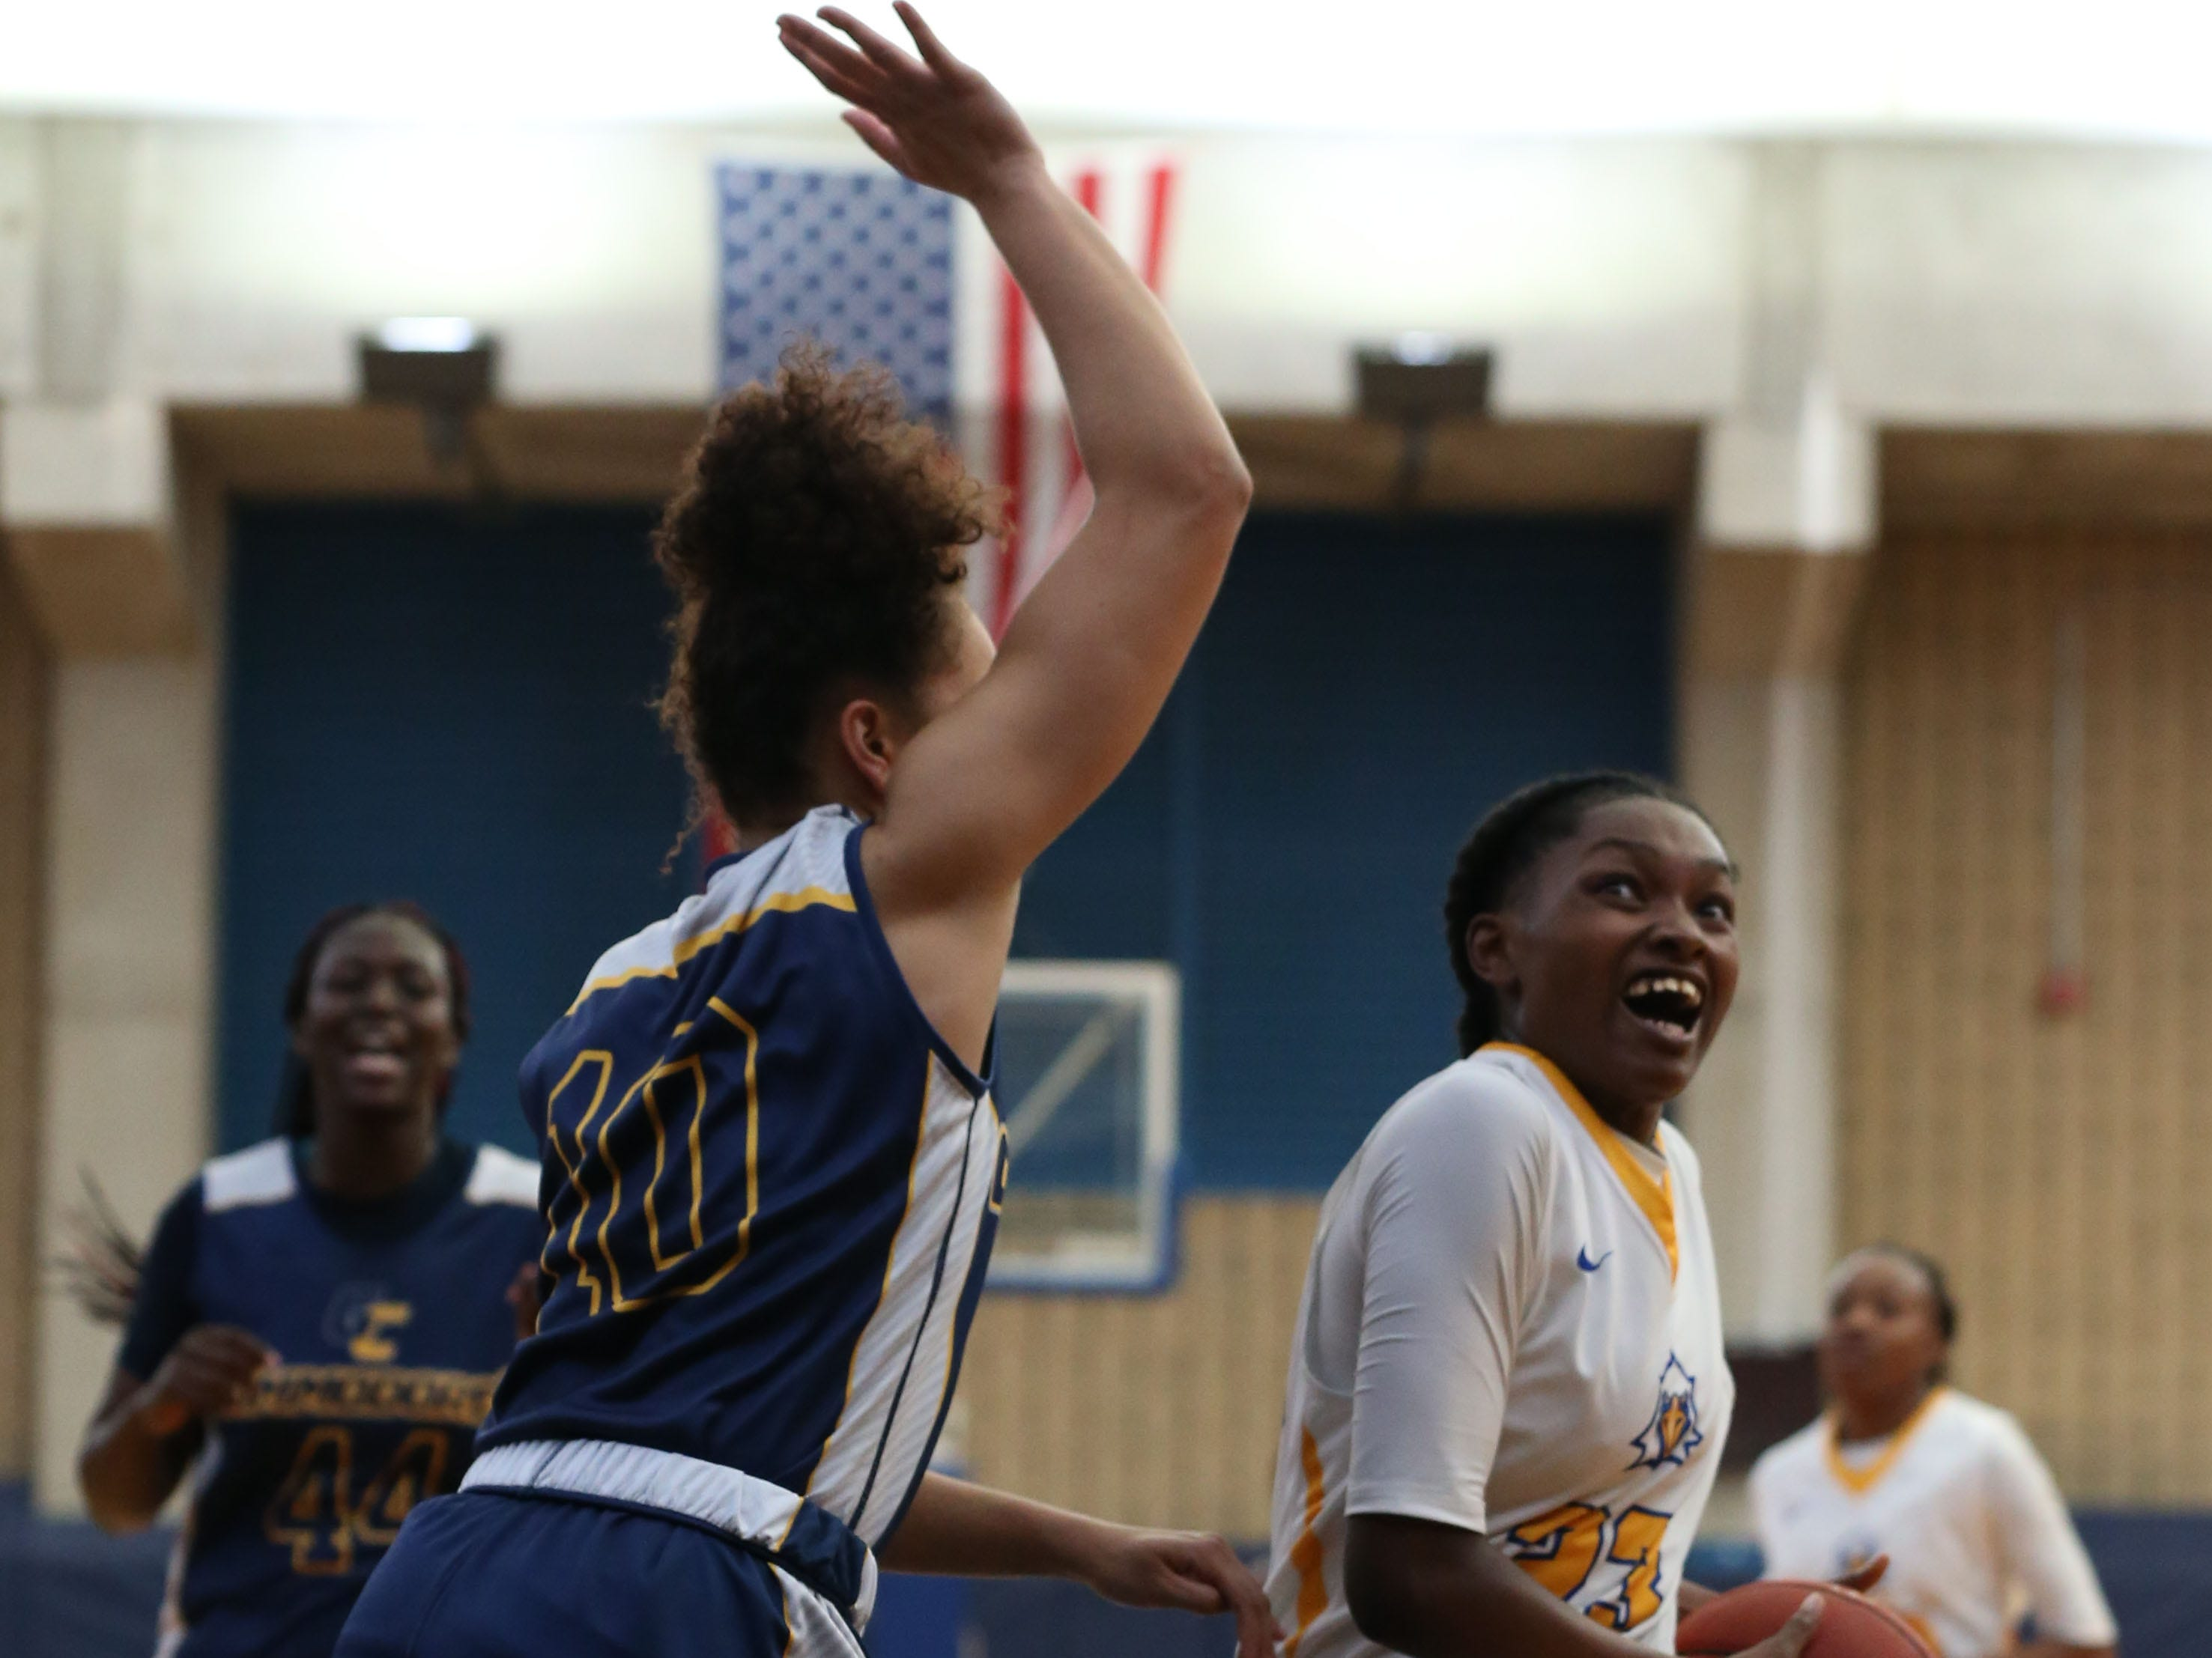 Tallahassee Community College Eagles guard Juliunn Redmond (23) drives the ball in for a layup. The Tallahassee Community College Eagles host the Gulf Coast State College Commodores in a conference match-up in the Eagledome, Saturday, Jan. 5, 2019.